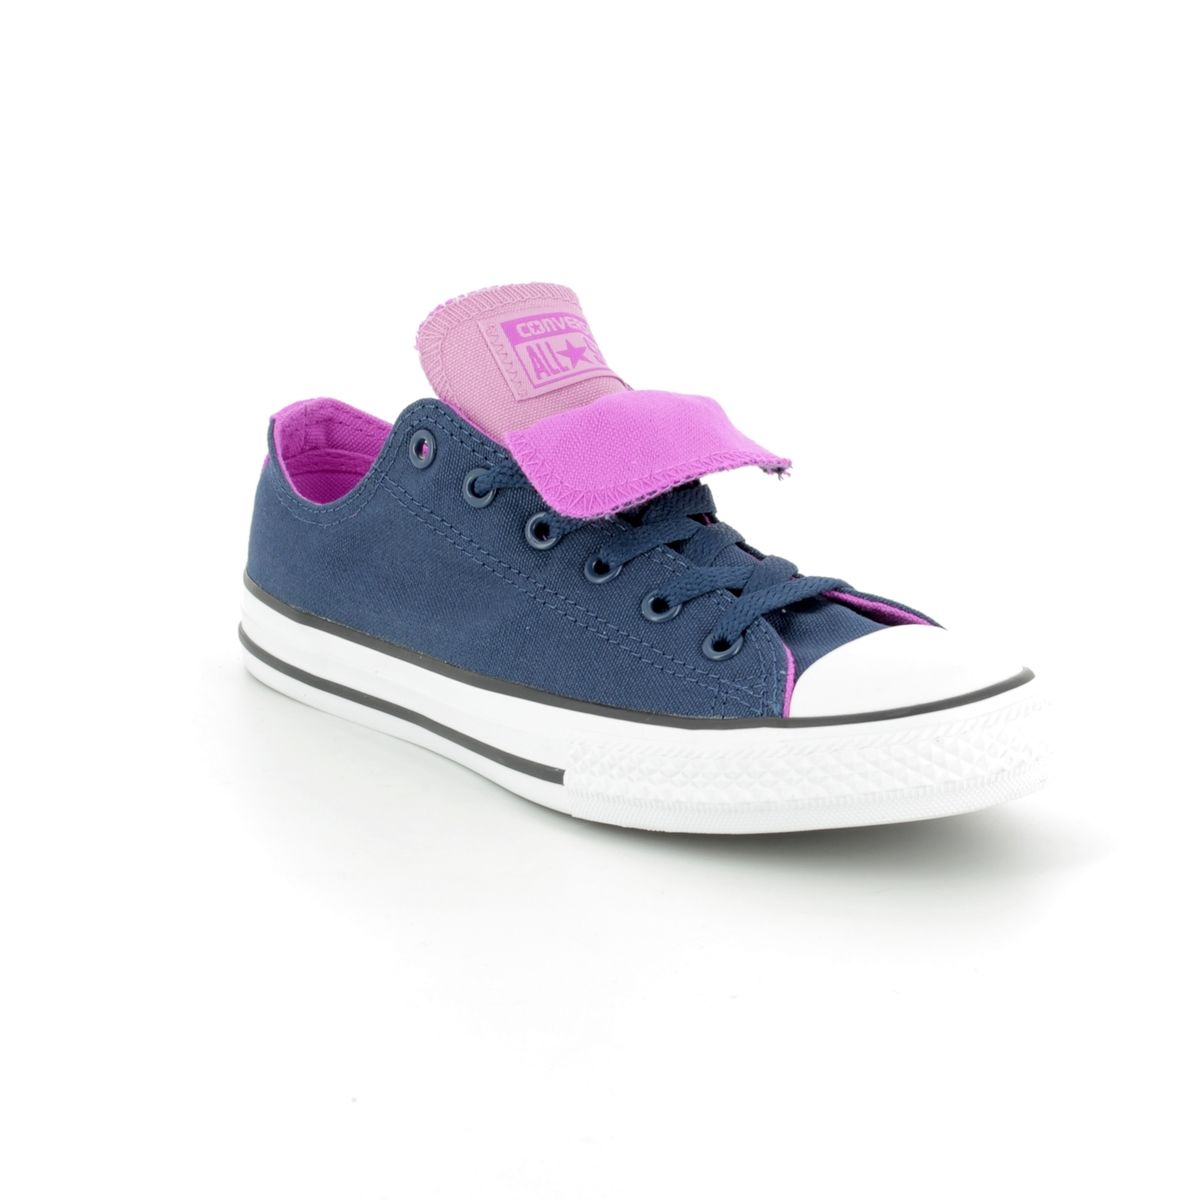 376d041b50d Converse Trainers - Navy multi - 660001C All Star Double Tongue